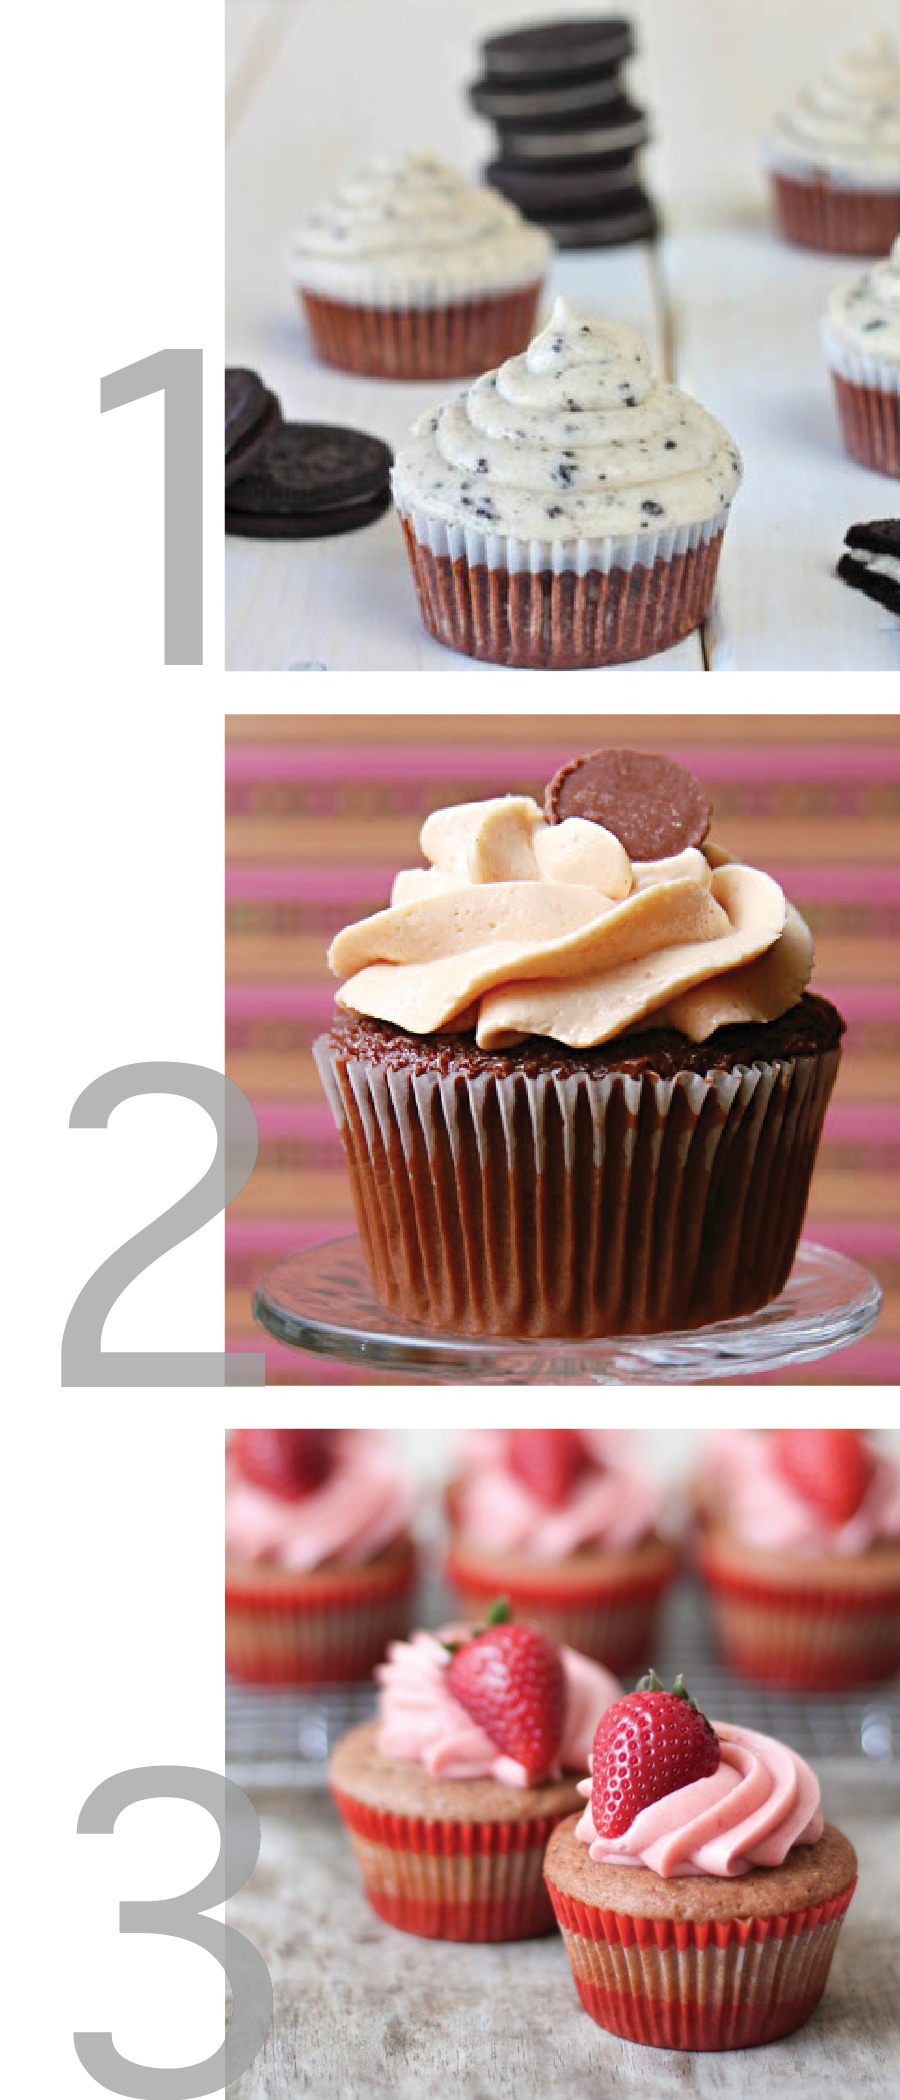 Weekly Pinspiration: Cupcakes